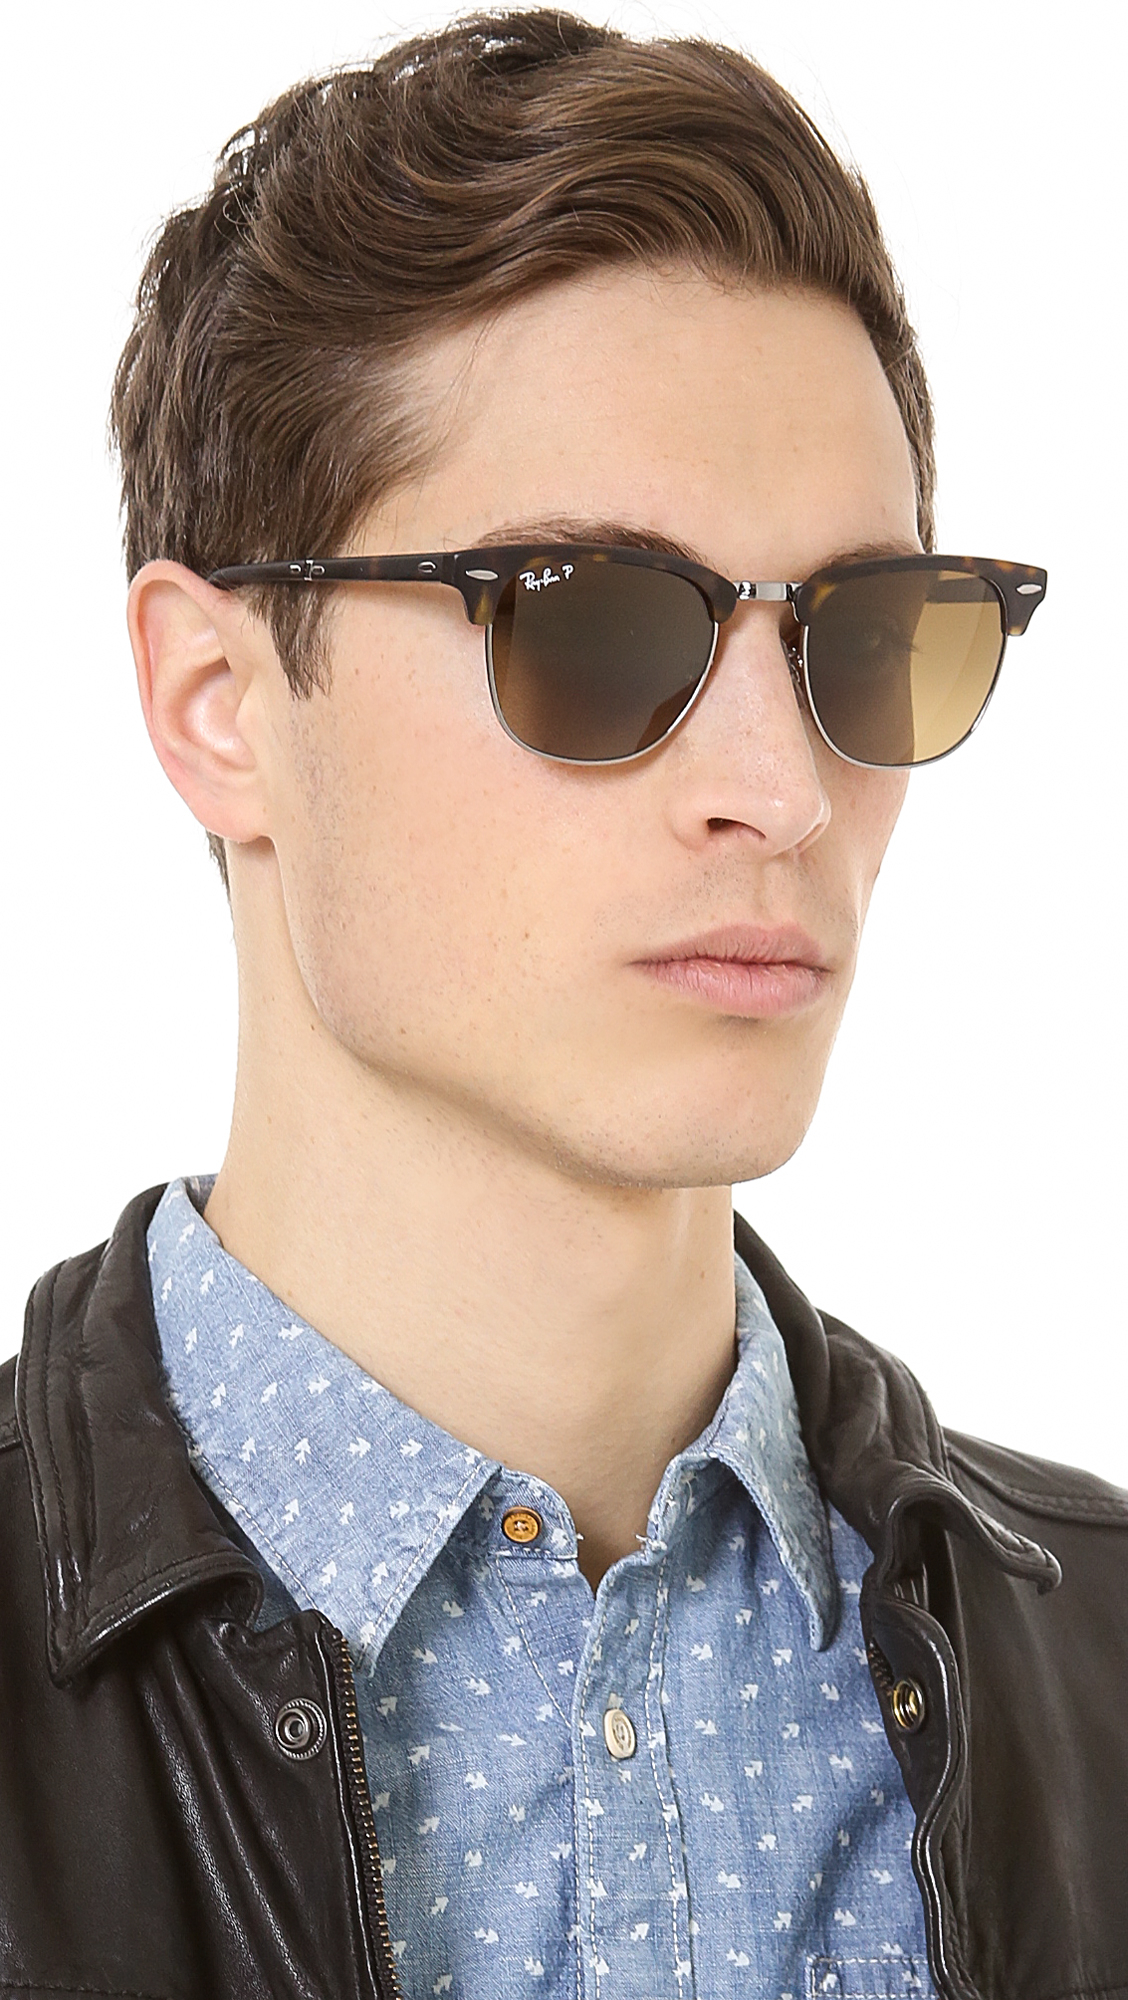 ba29642b9d4 ... sunglasses black gold frame with green lens 51mm 531d0 8cb06  coupon  code for gallery. previously sold at east dane mens ray ban clubmaster  9da8a 5a2e9